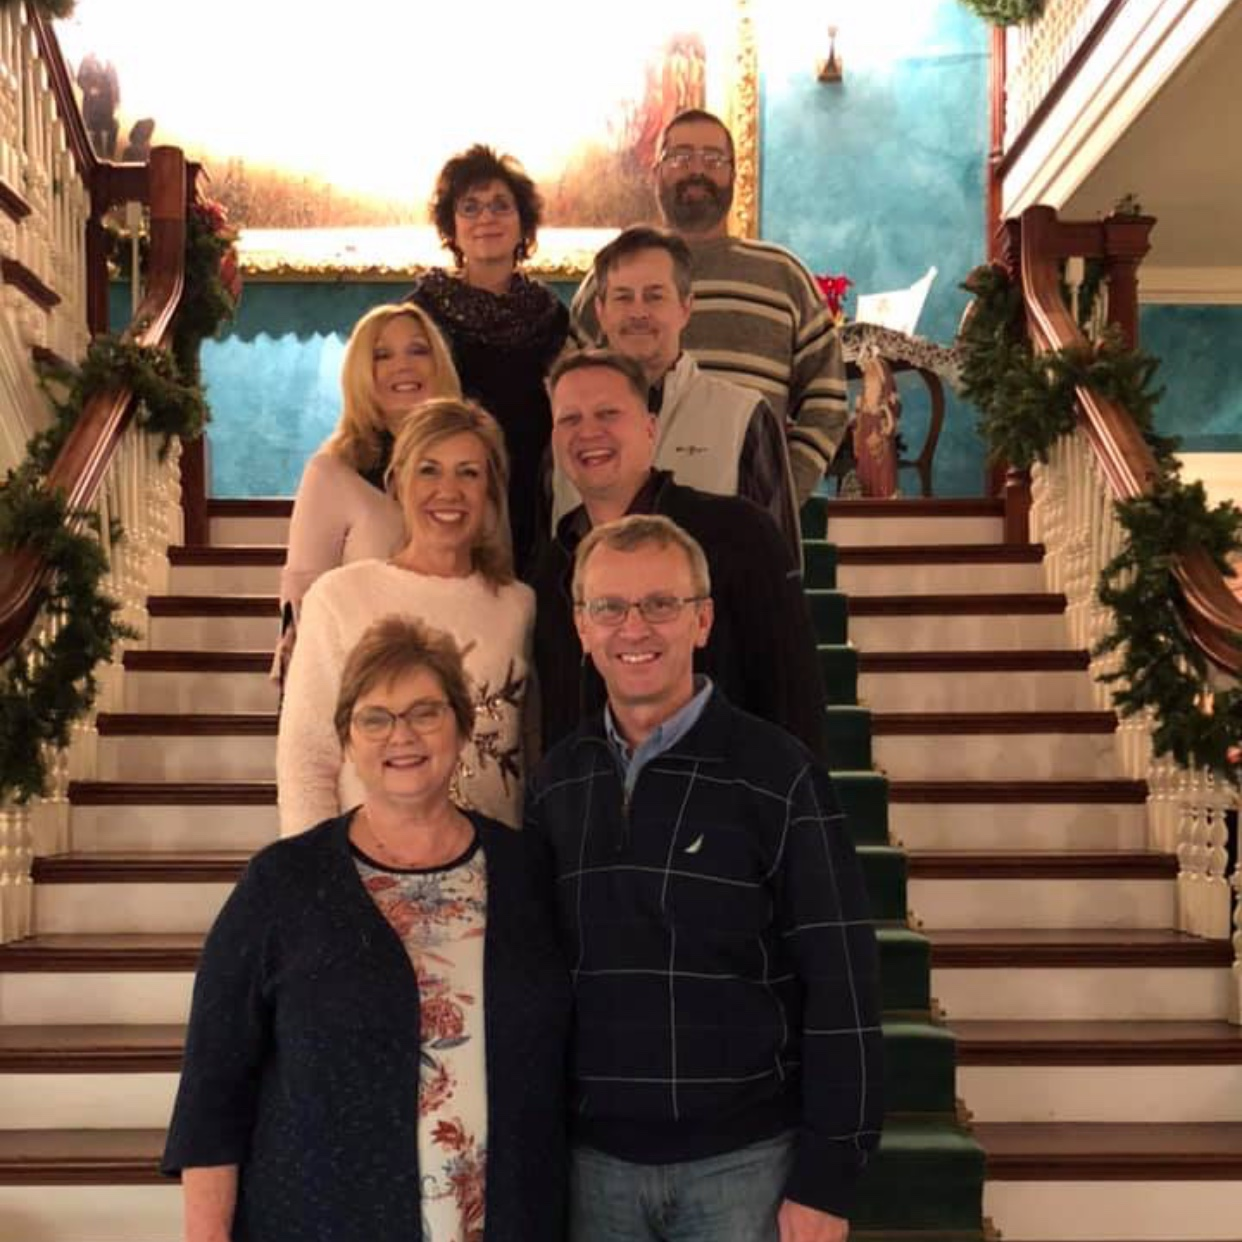 The Elder Team at VFC has been together for more than 20 years. From front to back:  Lonnie and Carolyn Parton  Jim and Teresa Nichols  Scott and Debi Maskell  Rick and Faye French